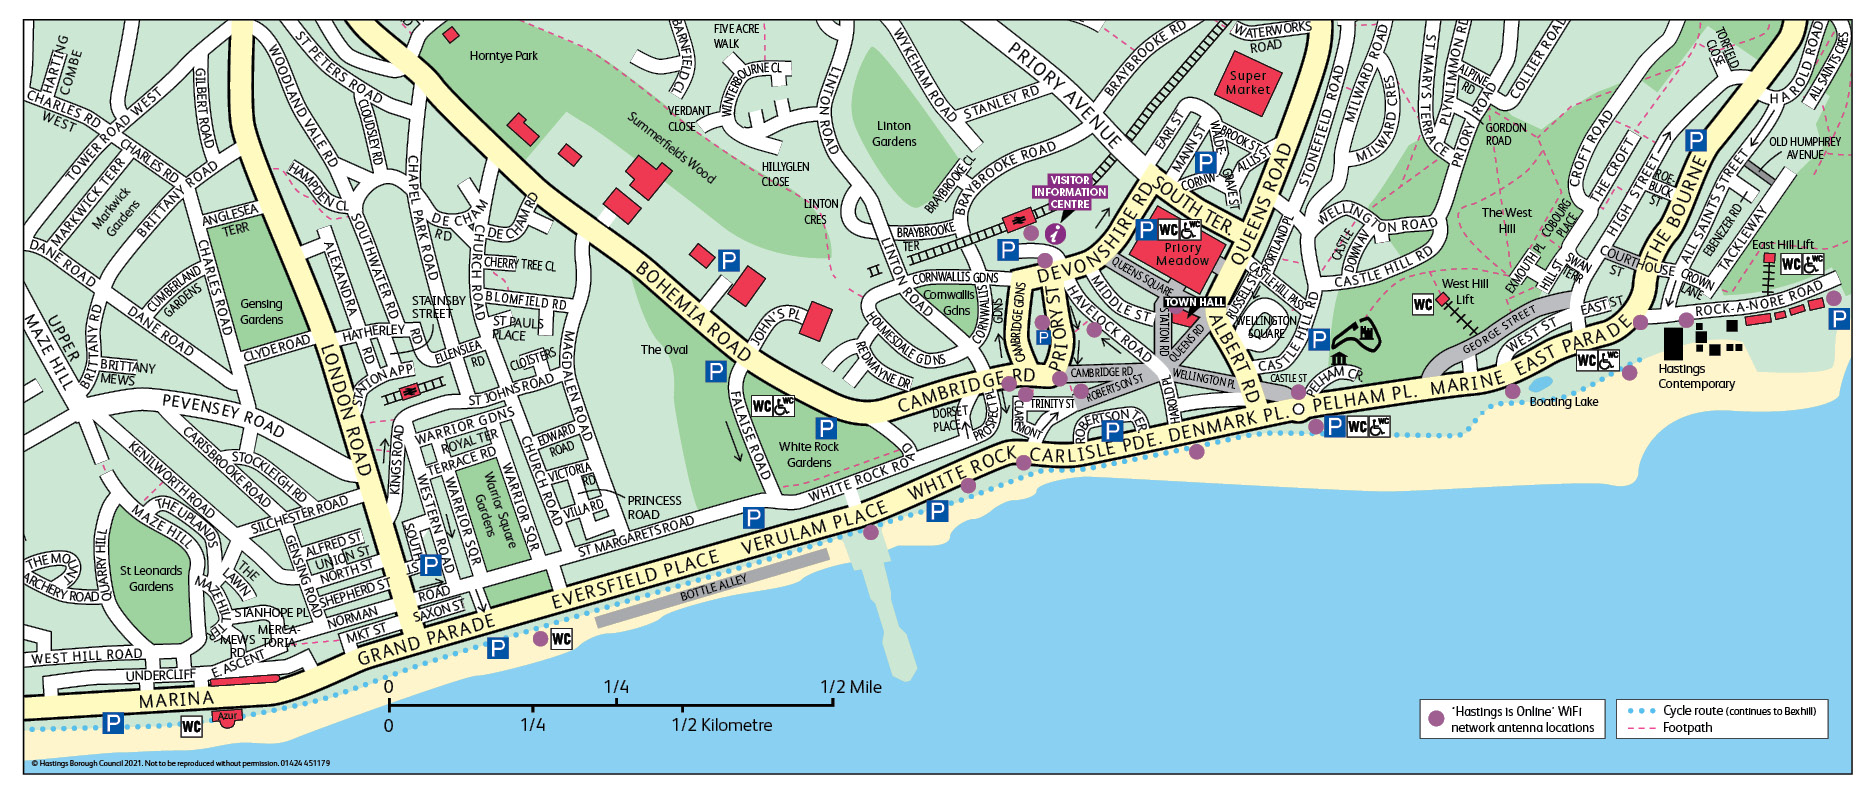 Map showing the positions of the Wi-Fi transmitters that are situated along the Hastings seafront.